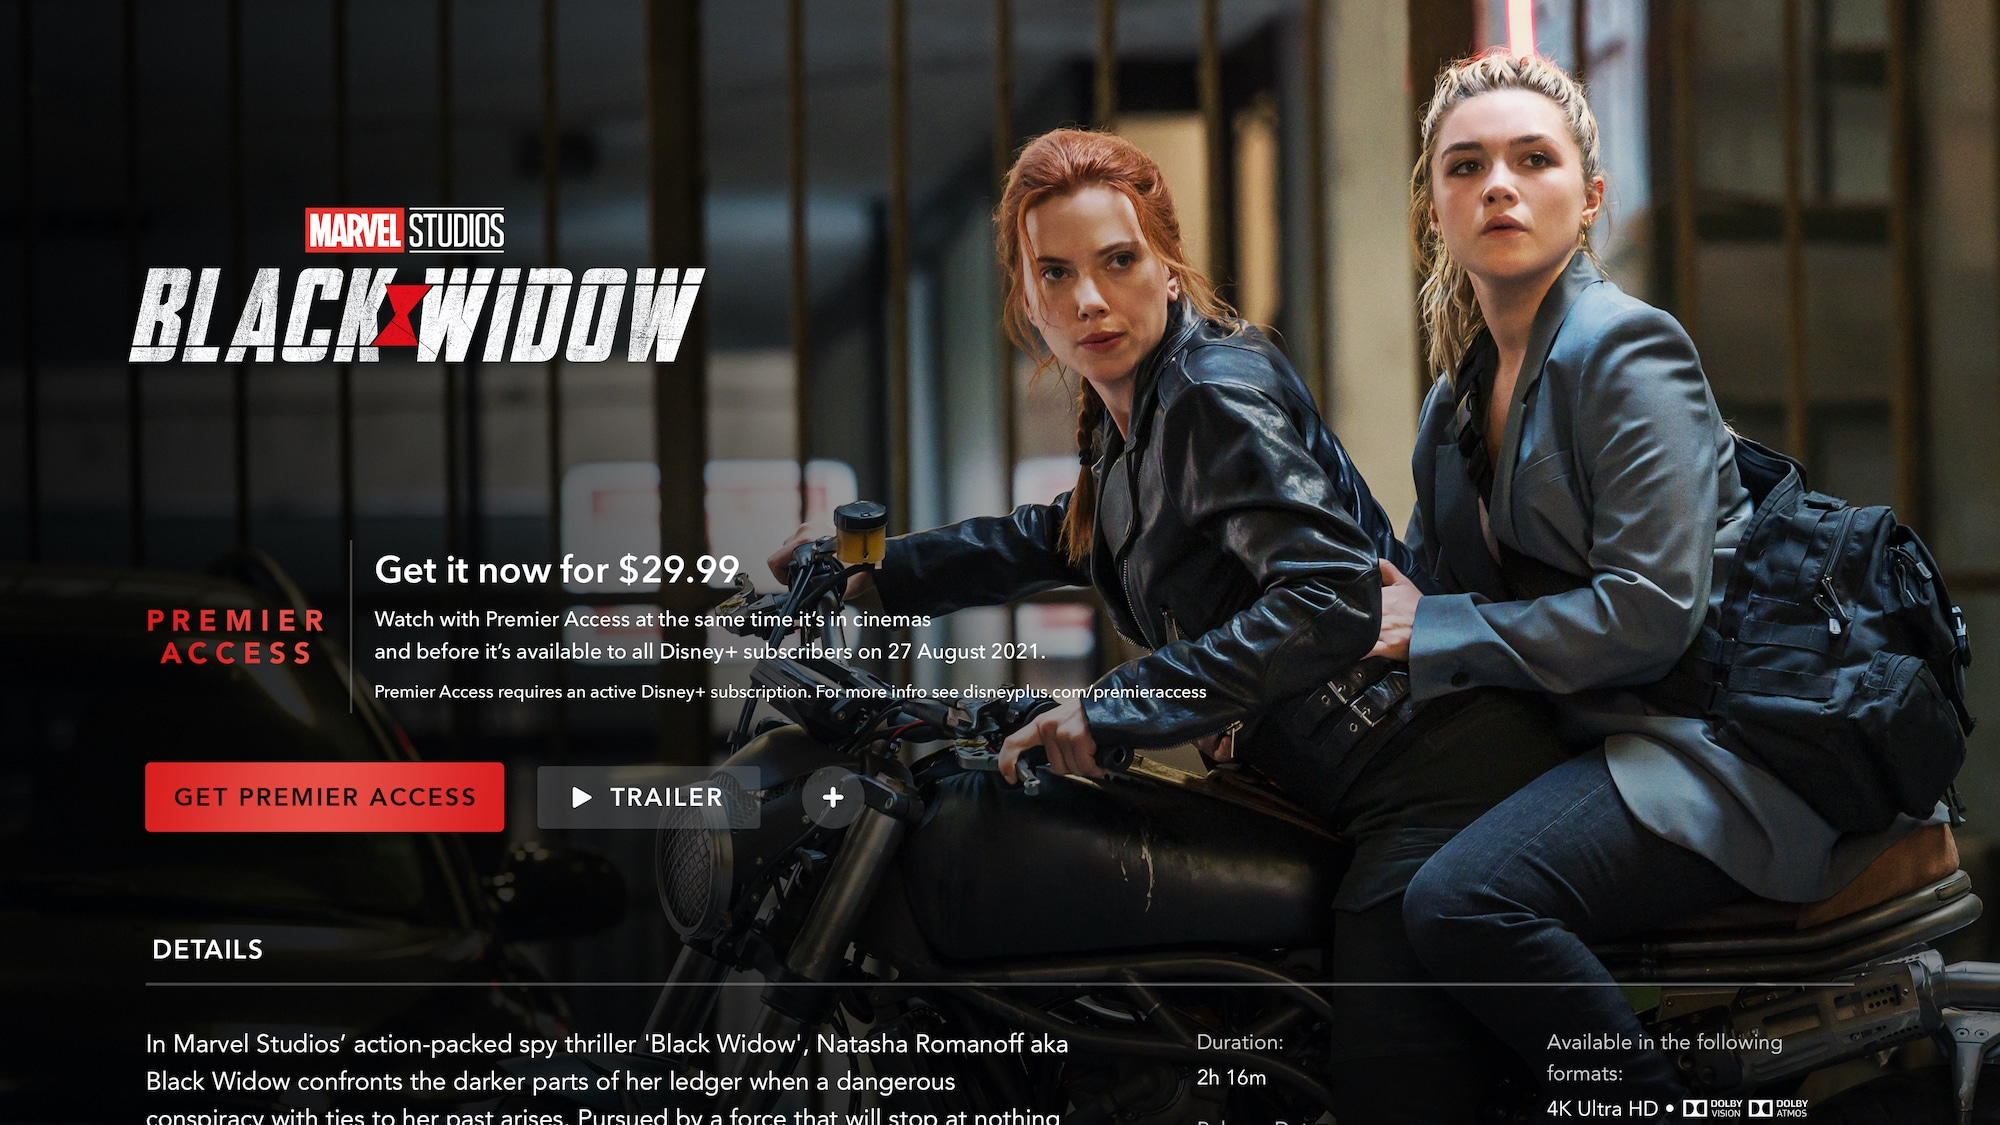 Disney+ Black Widow Premiere Access on Connected TV Device